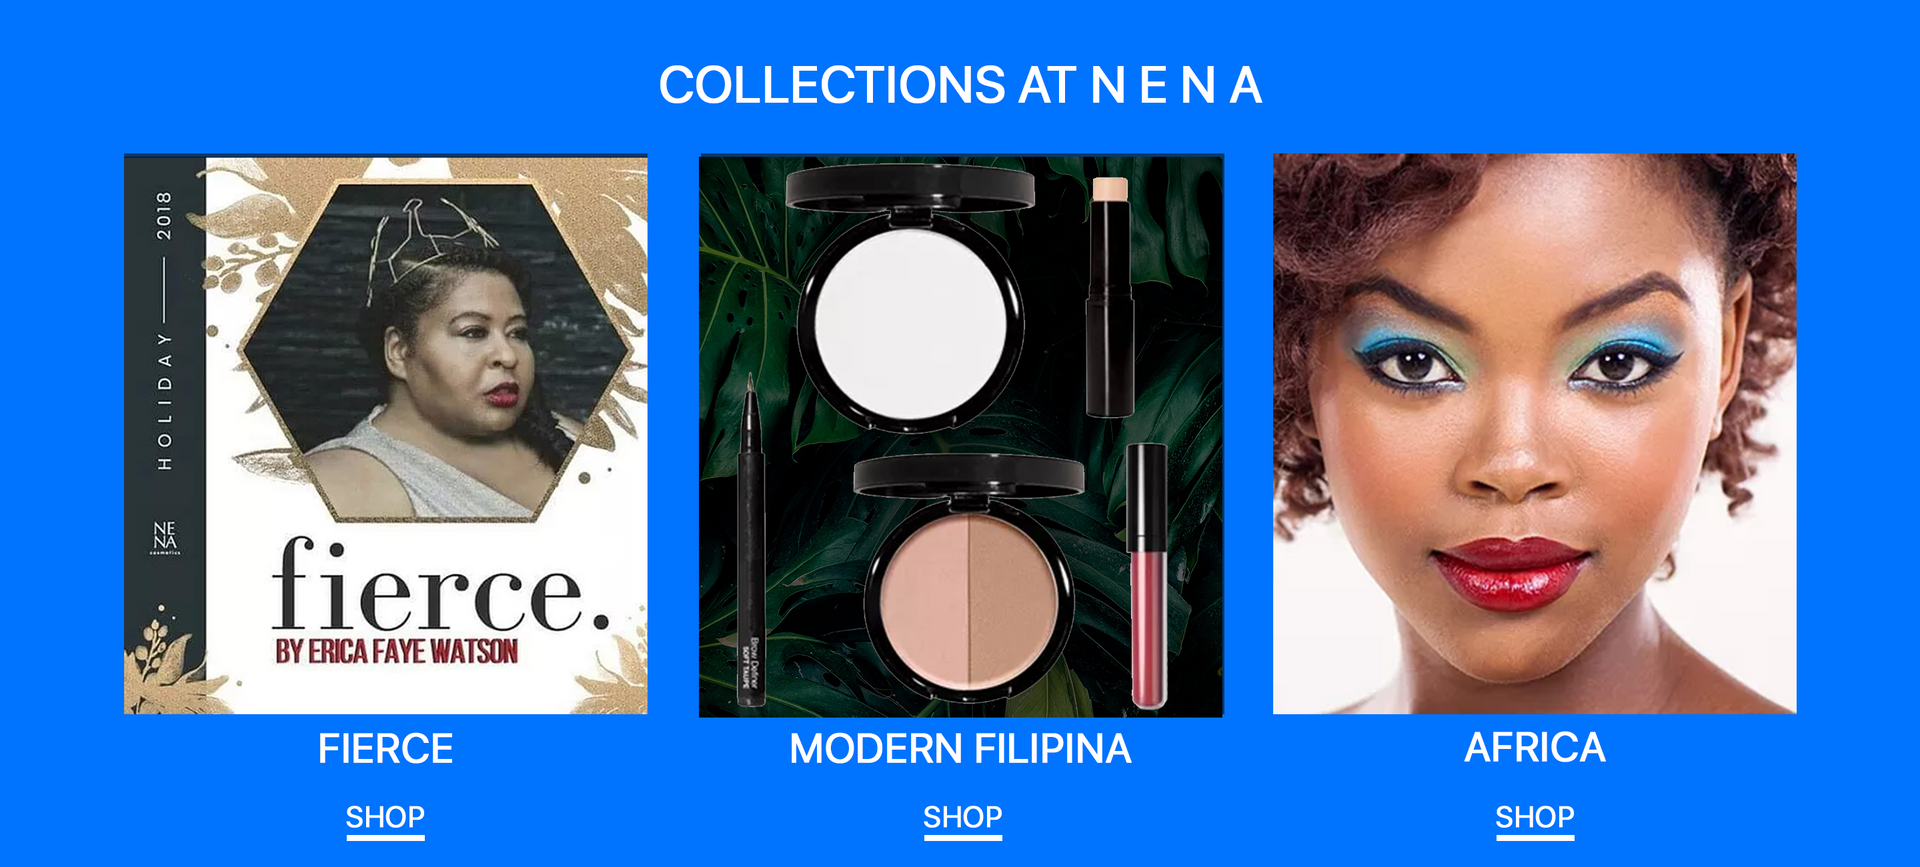 NENA collections.png